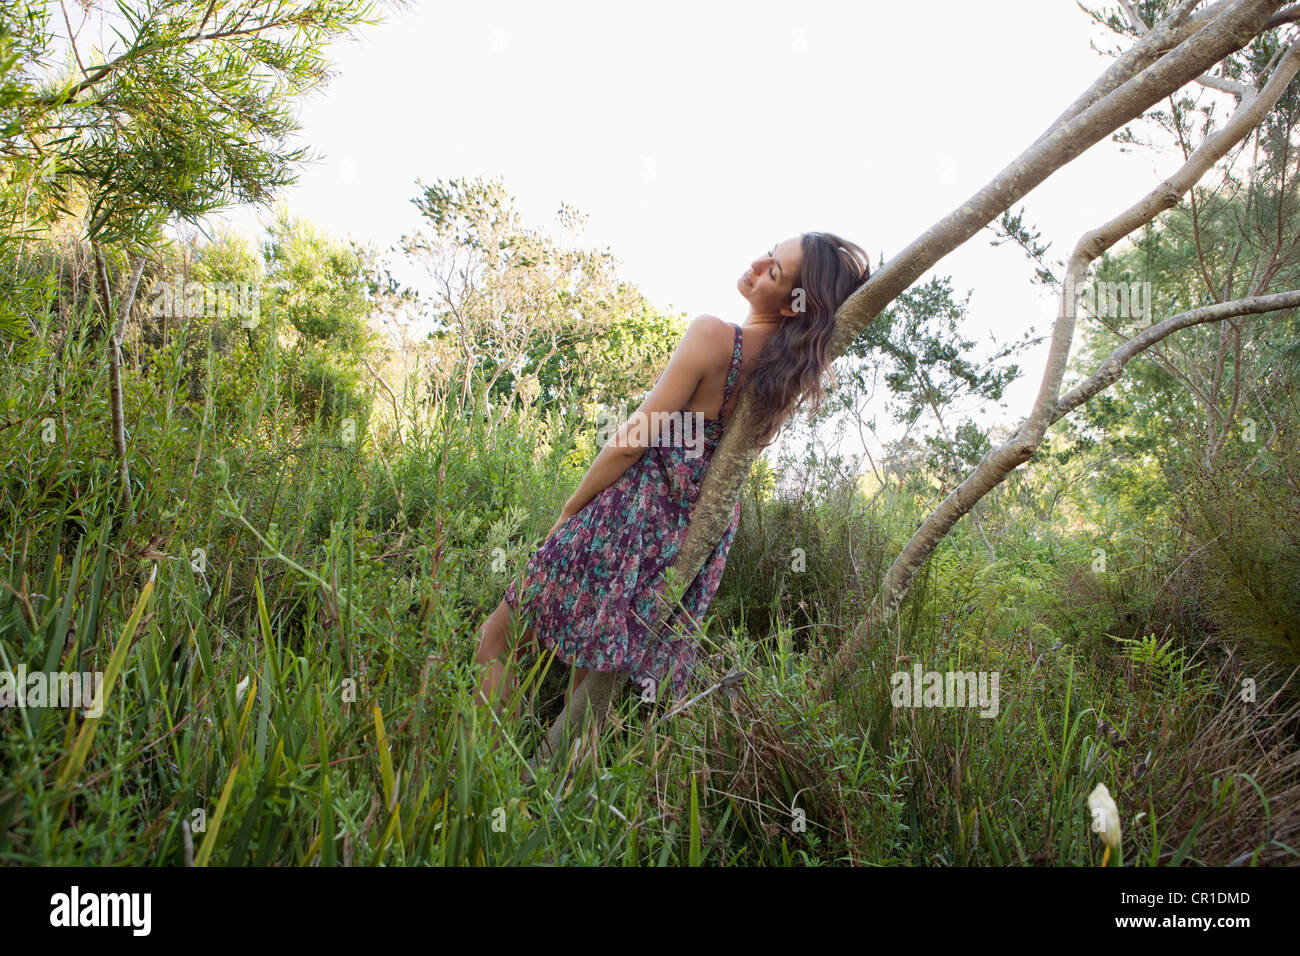 Teenage girl resting on curved tree - Stock Image